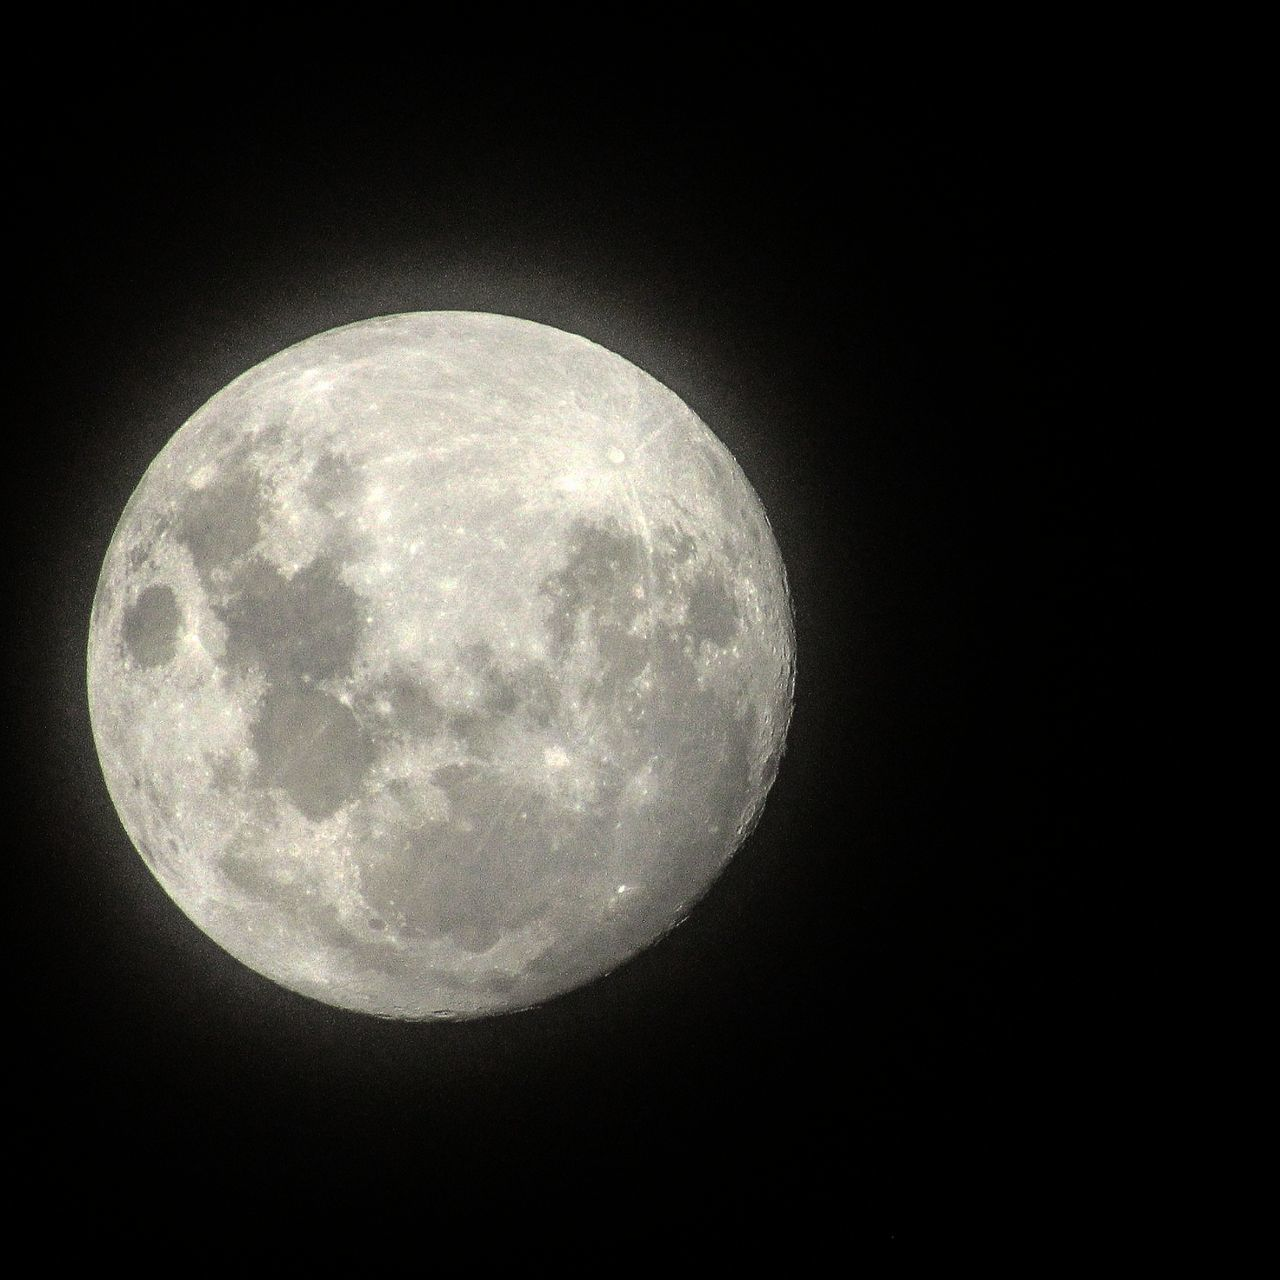 moon, night, moon surface, astronomy, planetary moon, beauty in nature, nature, circle, majestic, tranquility, low angle view, scenics, copy space, clear sky, space exploration, tranquil scene, no people, sky, outdoors, space, close-up